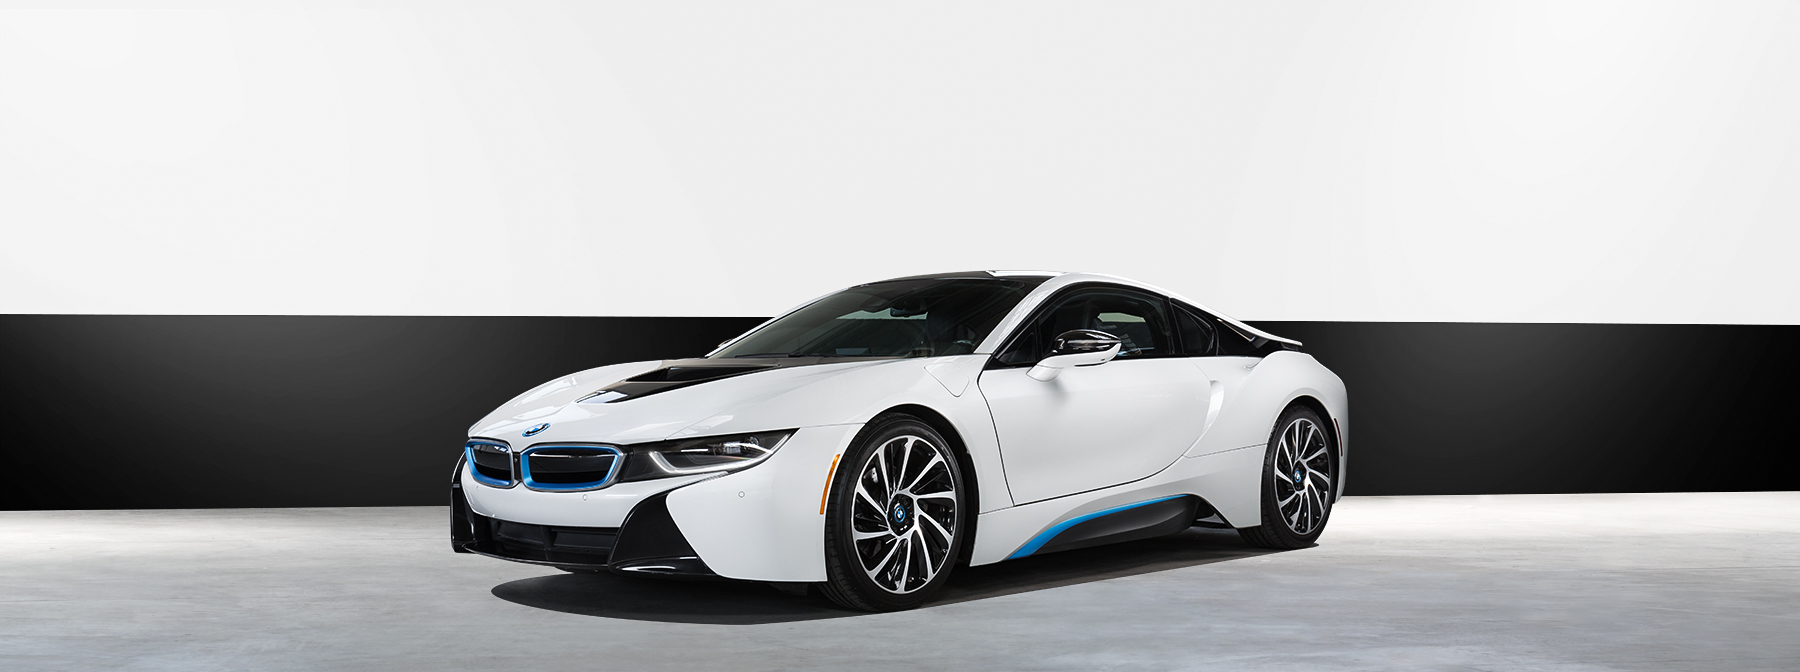 BMW I8 Is A Very Stylish All Wheel Drive Turbocharged Gas/Electric High  Performance Vehicle. This Revolutionary BMW Rental Comes Packed With A  Powerful ...